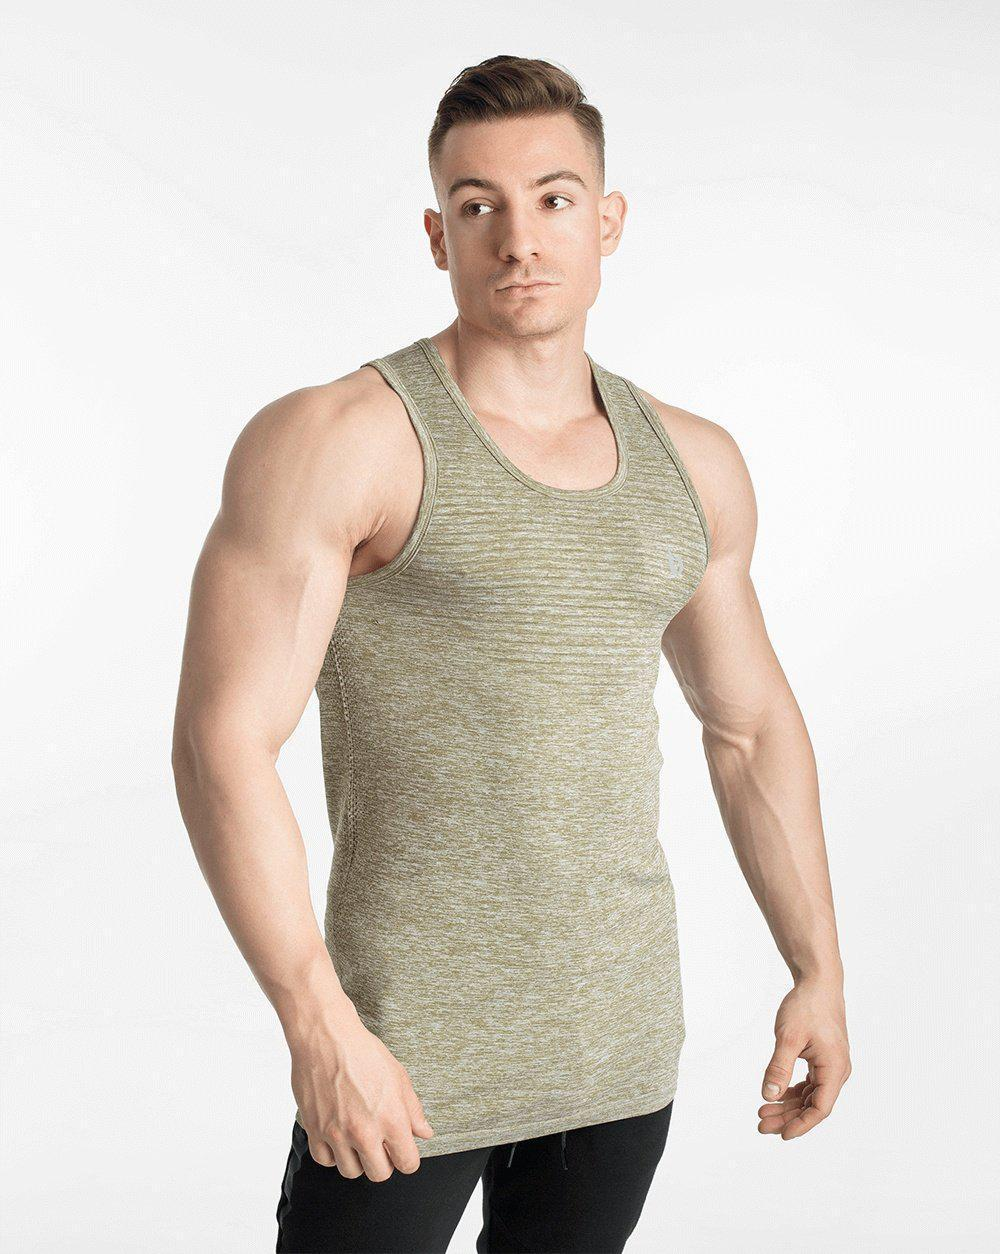 Biink VaporX Seamless Knitted Tank - Military